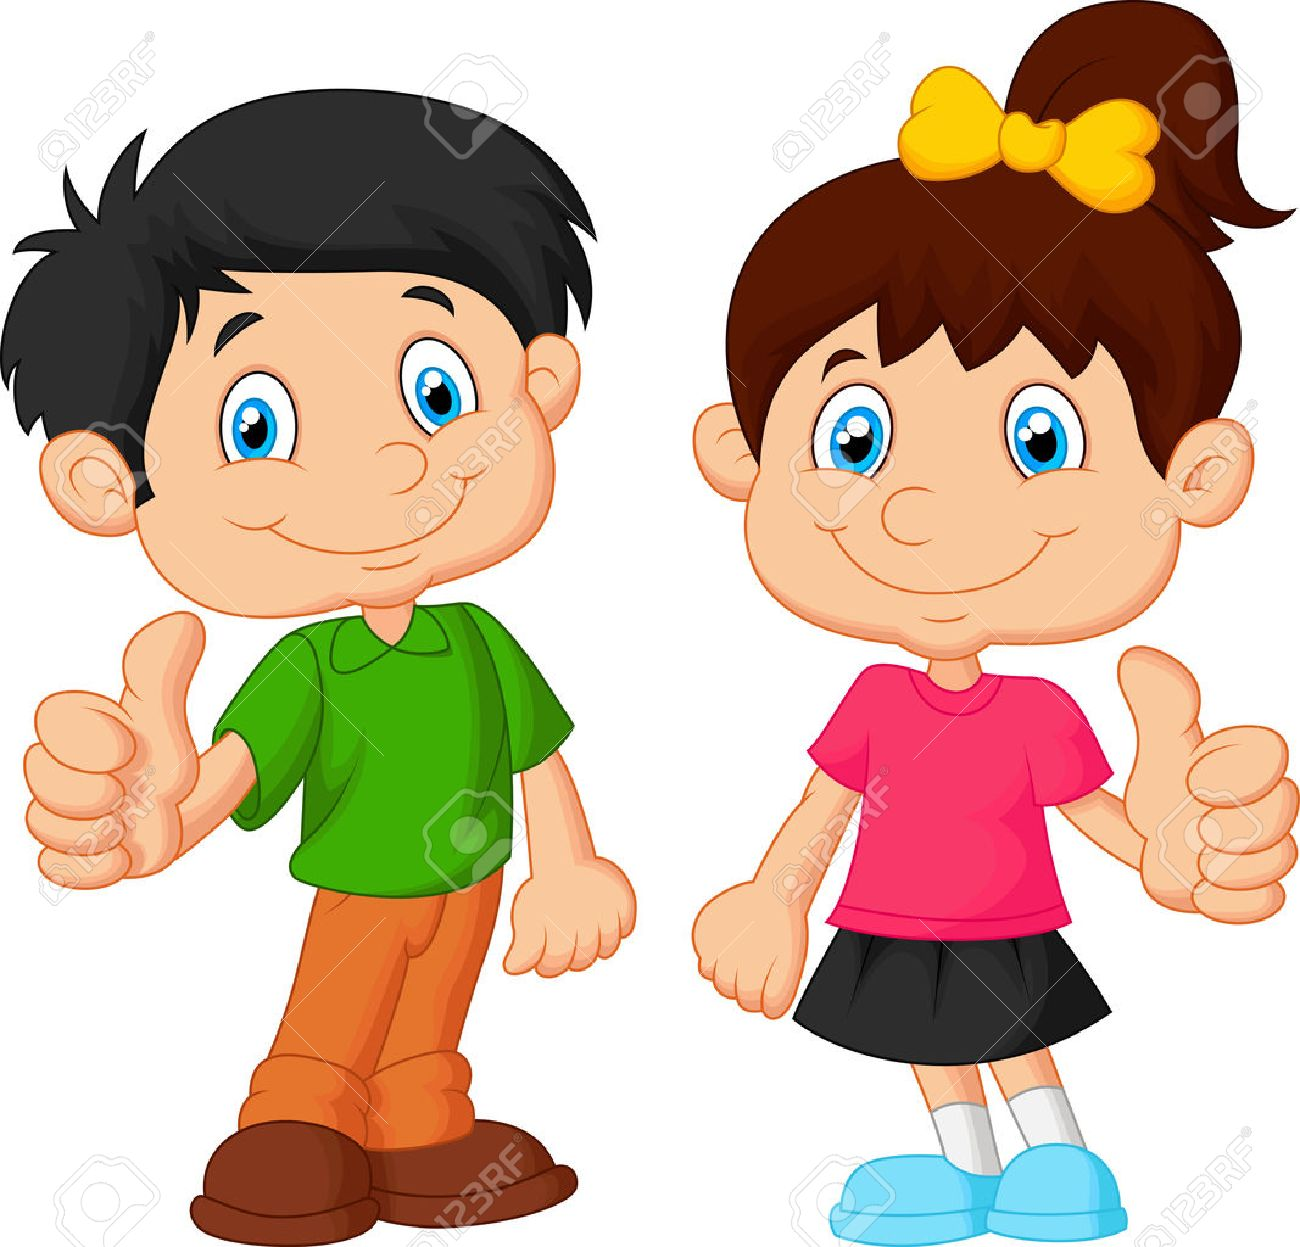 Cartoon boy and girl giving thumb up.